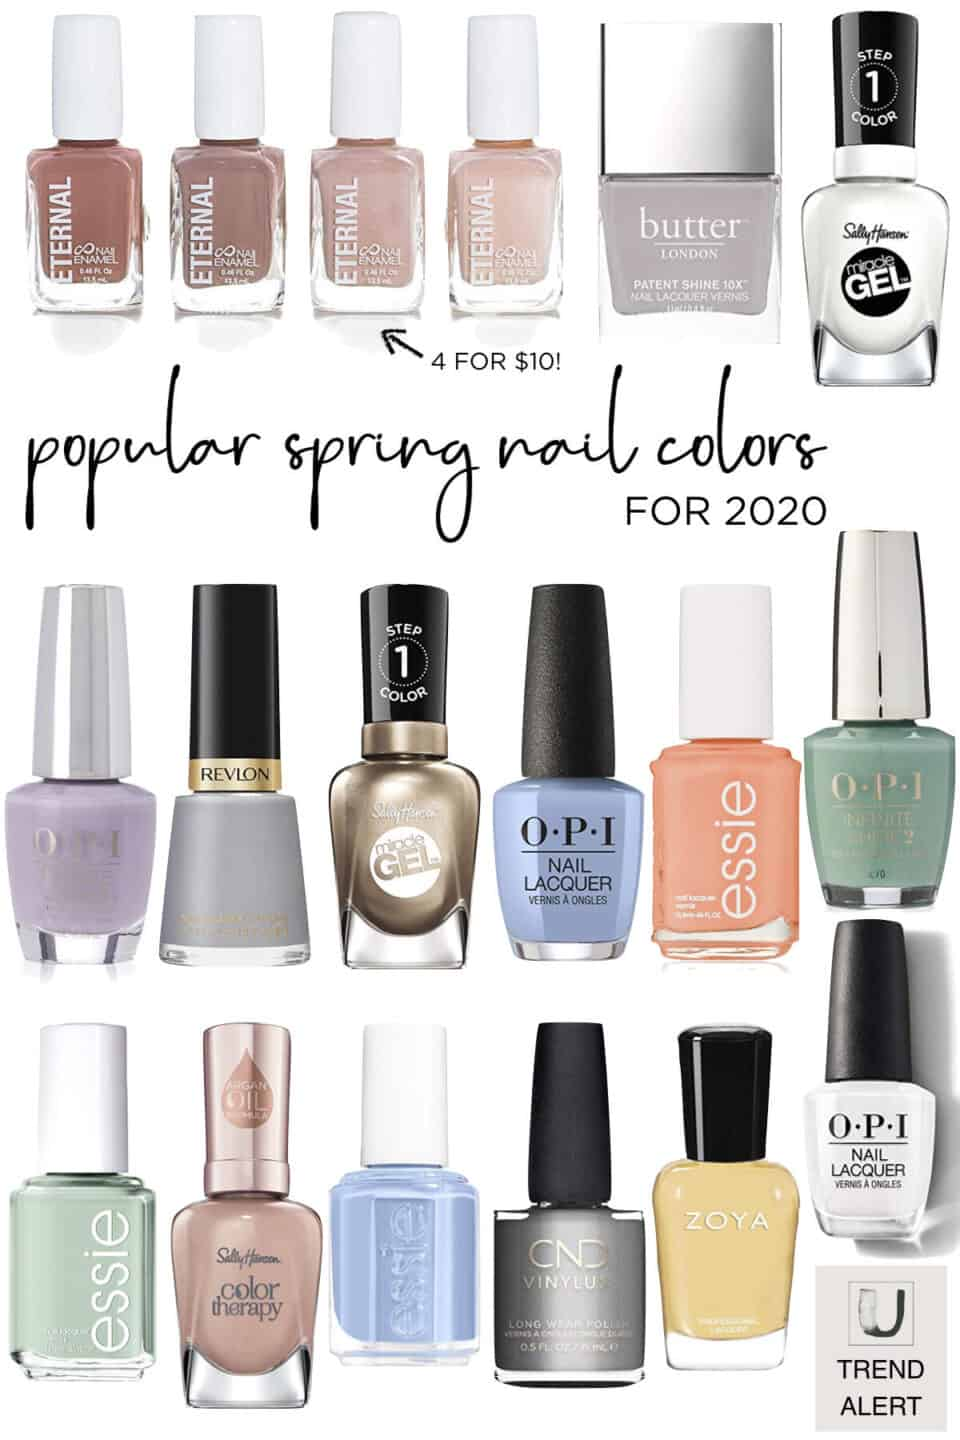 Spring Nail Colors for 2020